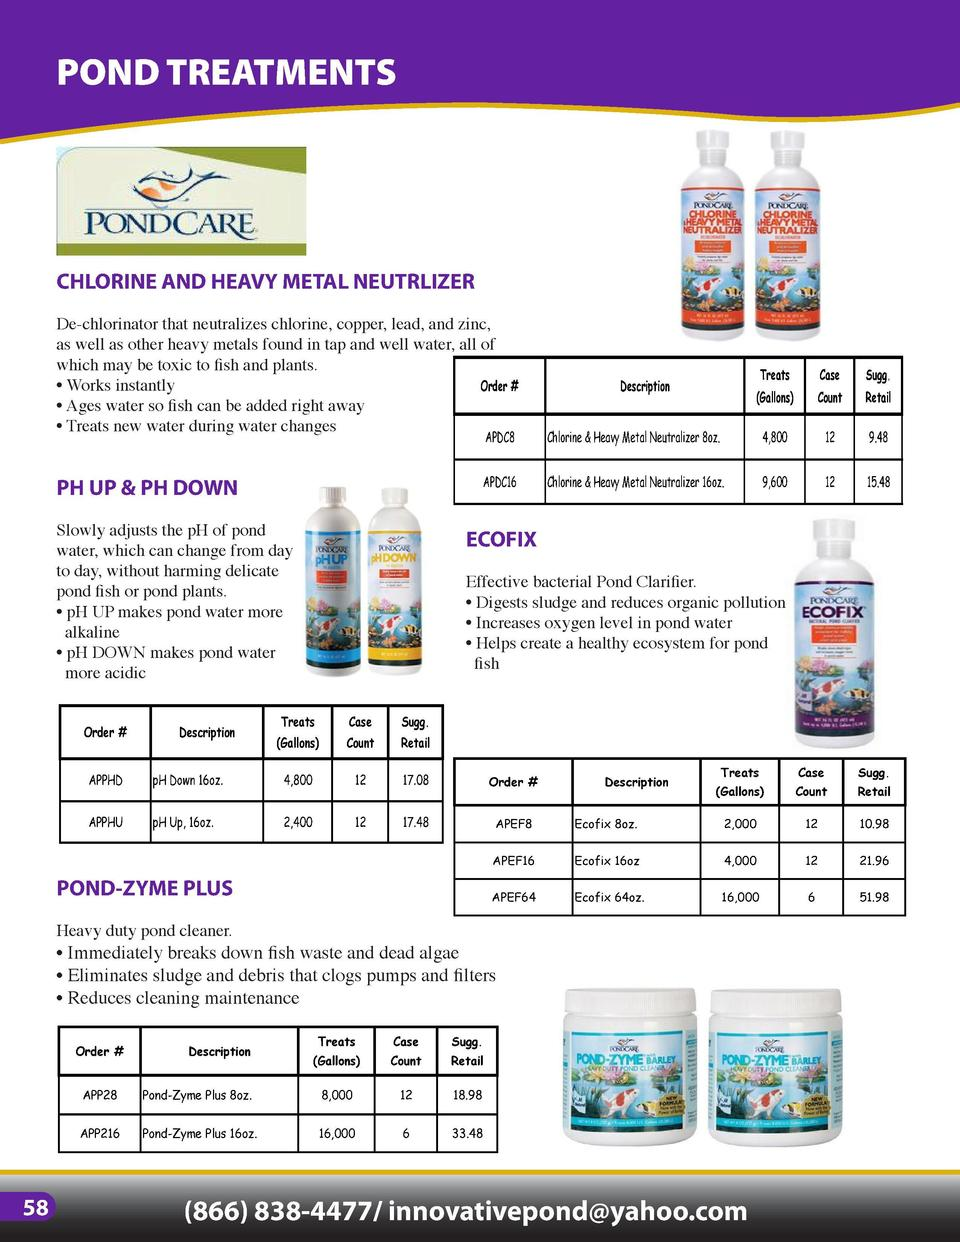 POND TREATMENTS  CHLORINE AND HEAVY METAL NEUTRLIZER  GREENCLEAR GRANUALR ALGAECIDE  De-chlorinator that neutralizes chlor...